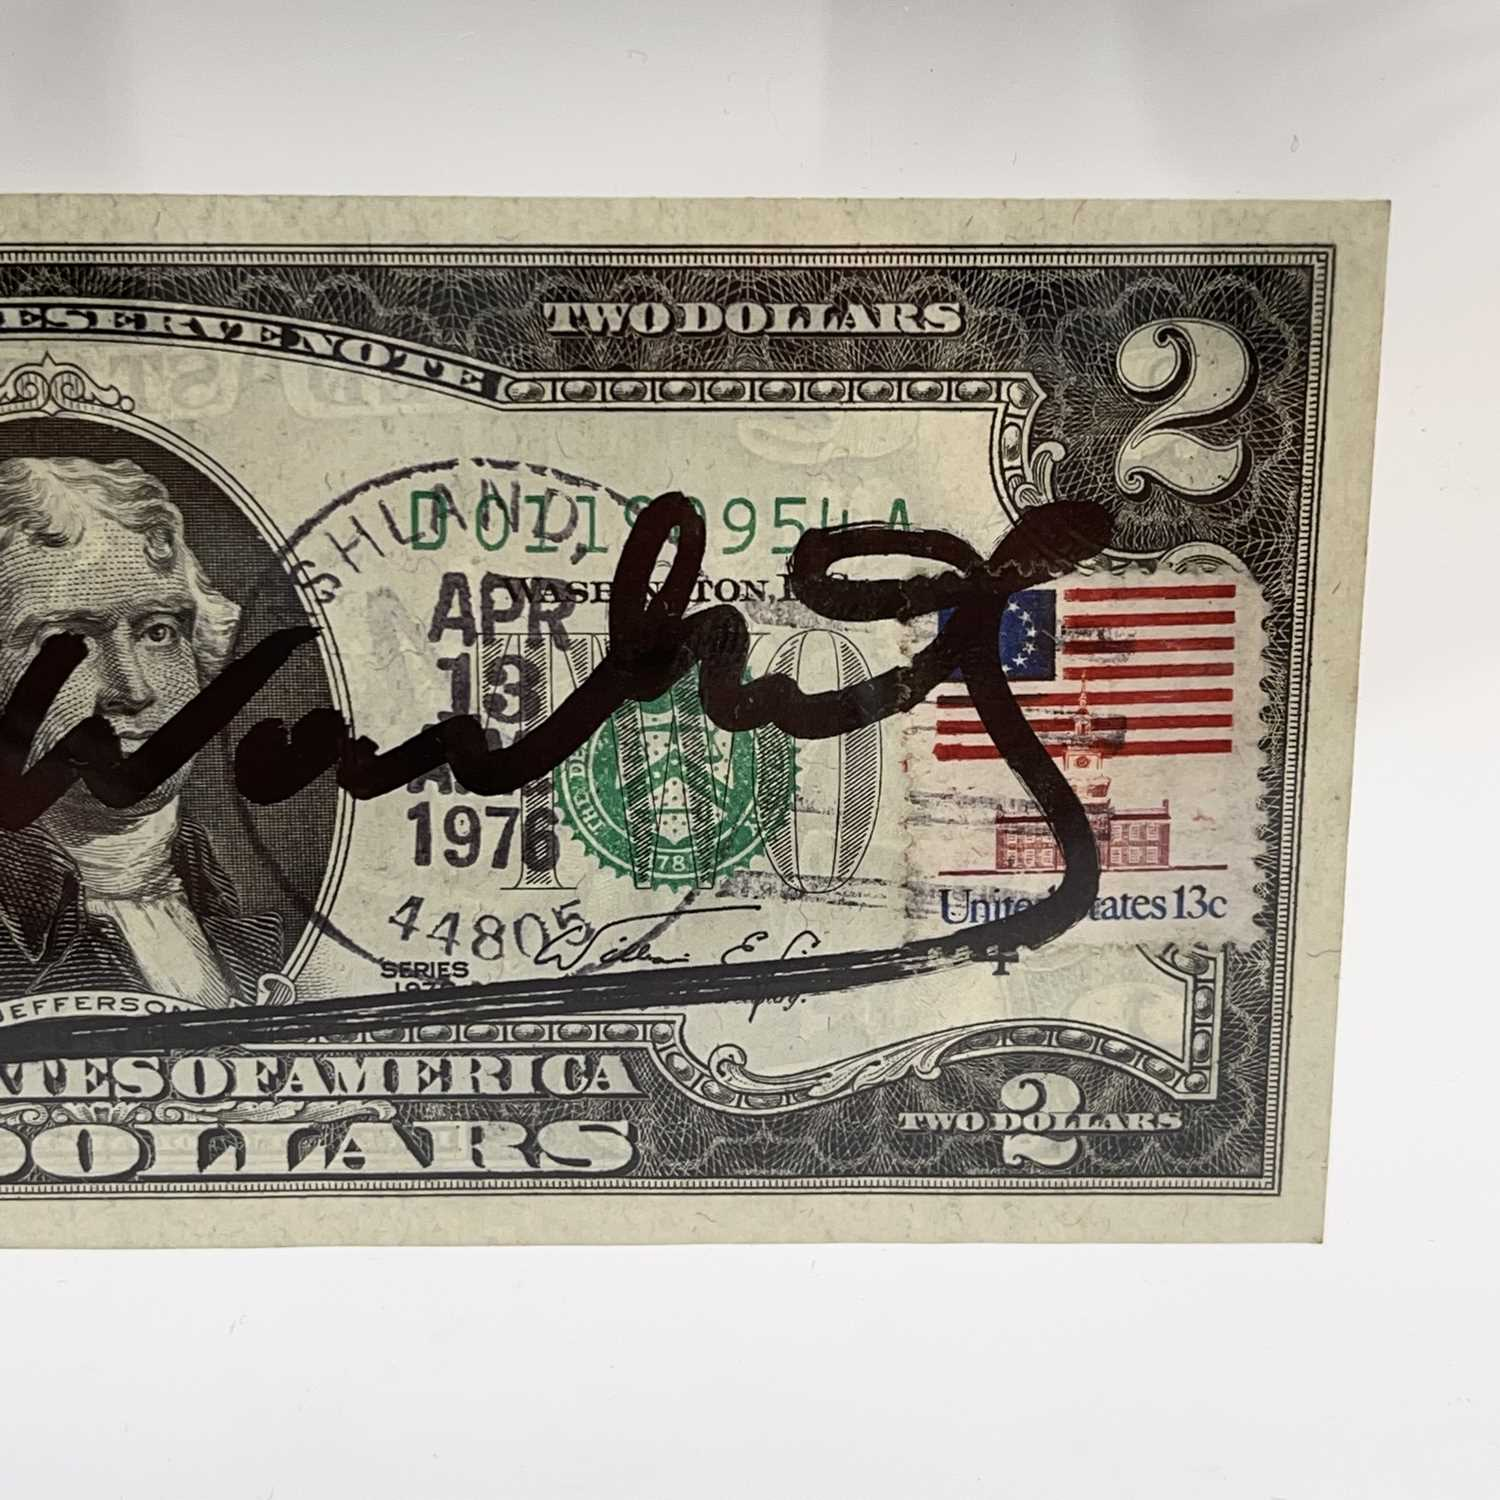 After Andy Warhol, a two-dollar banknote, bears signature, together with accompanying paperwork. - Image 10 of 14